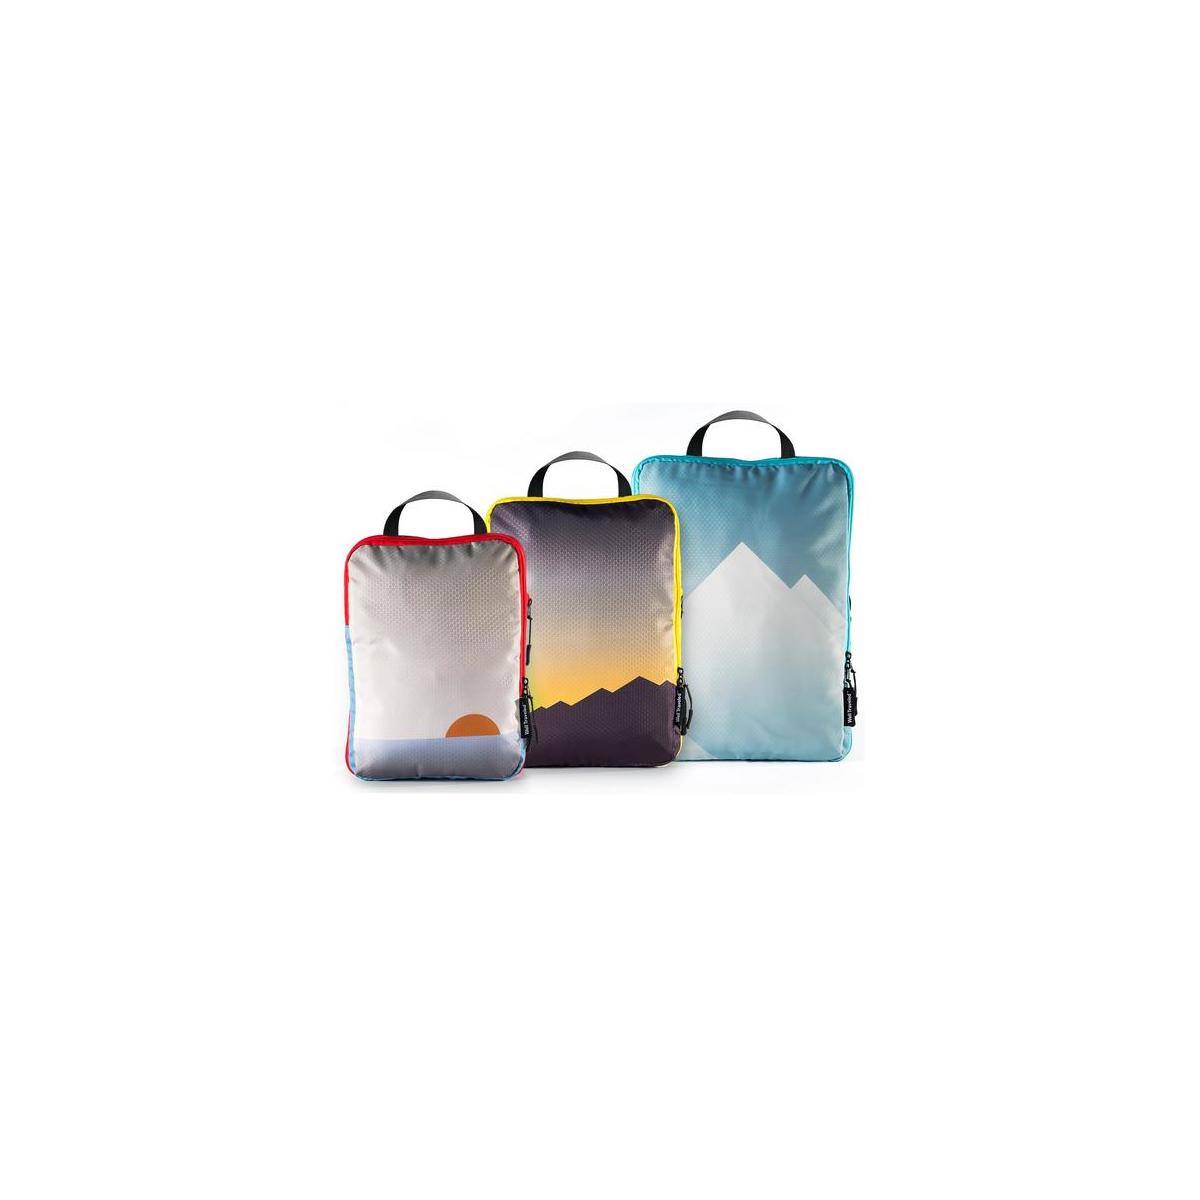 3pc Compression Packing Cubes